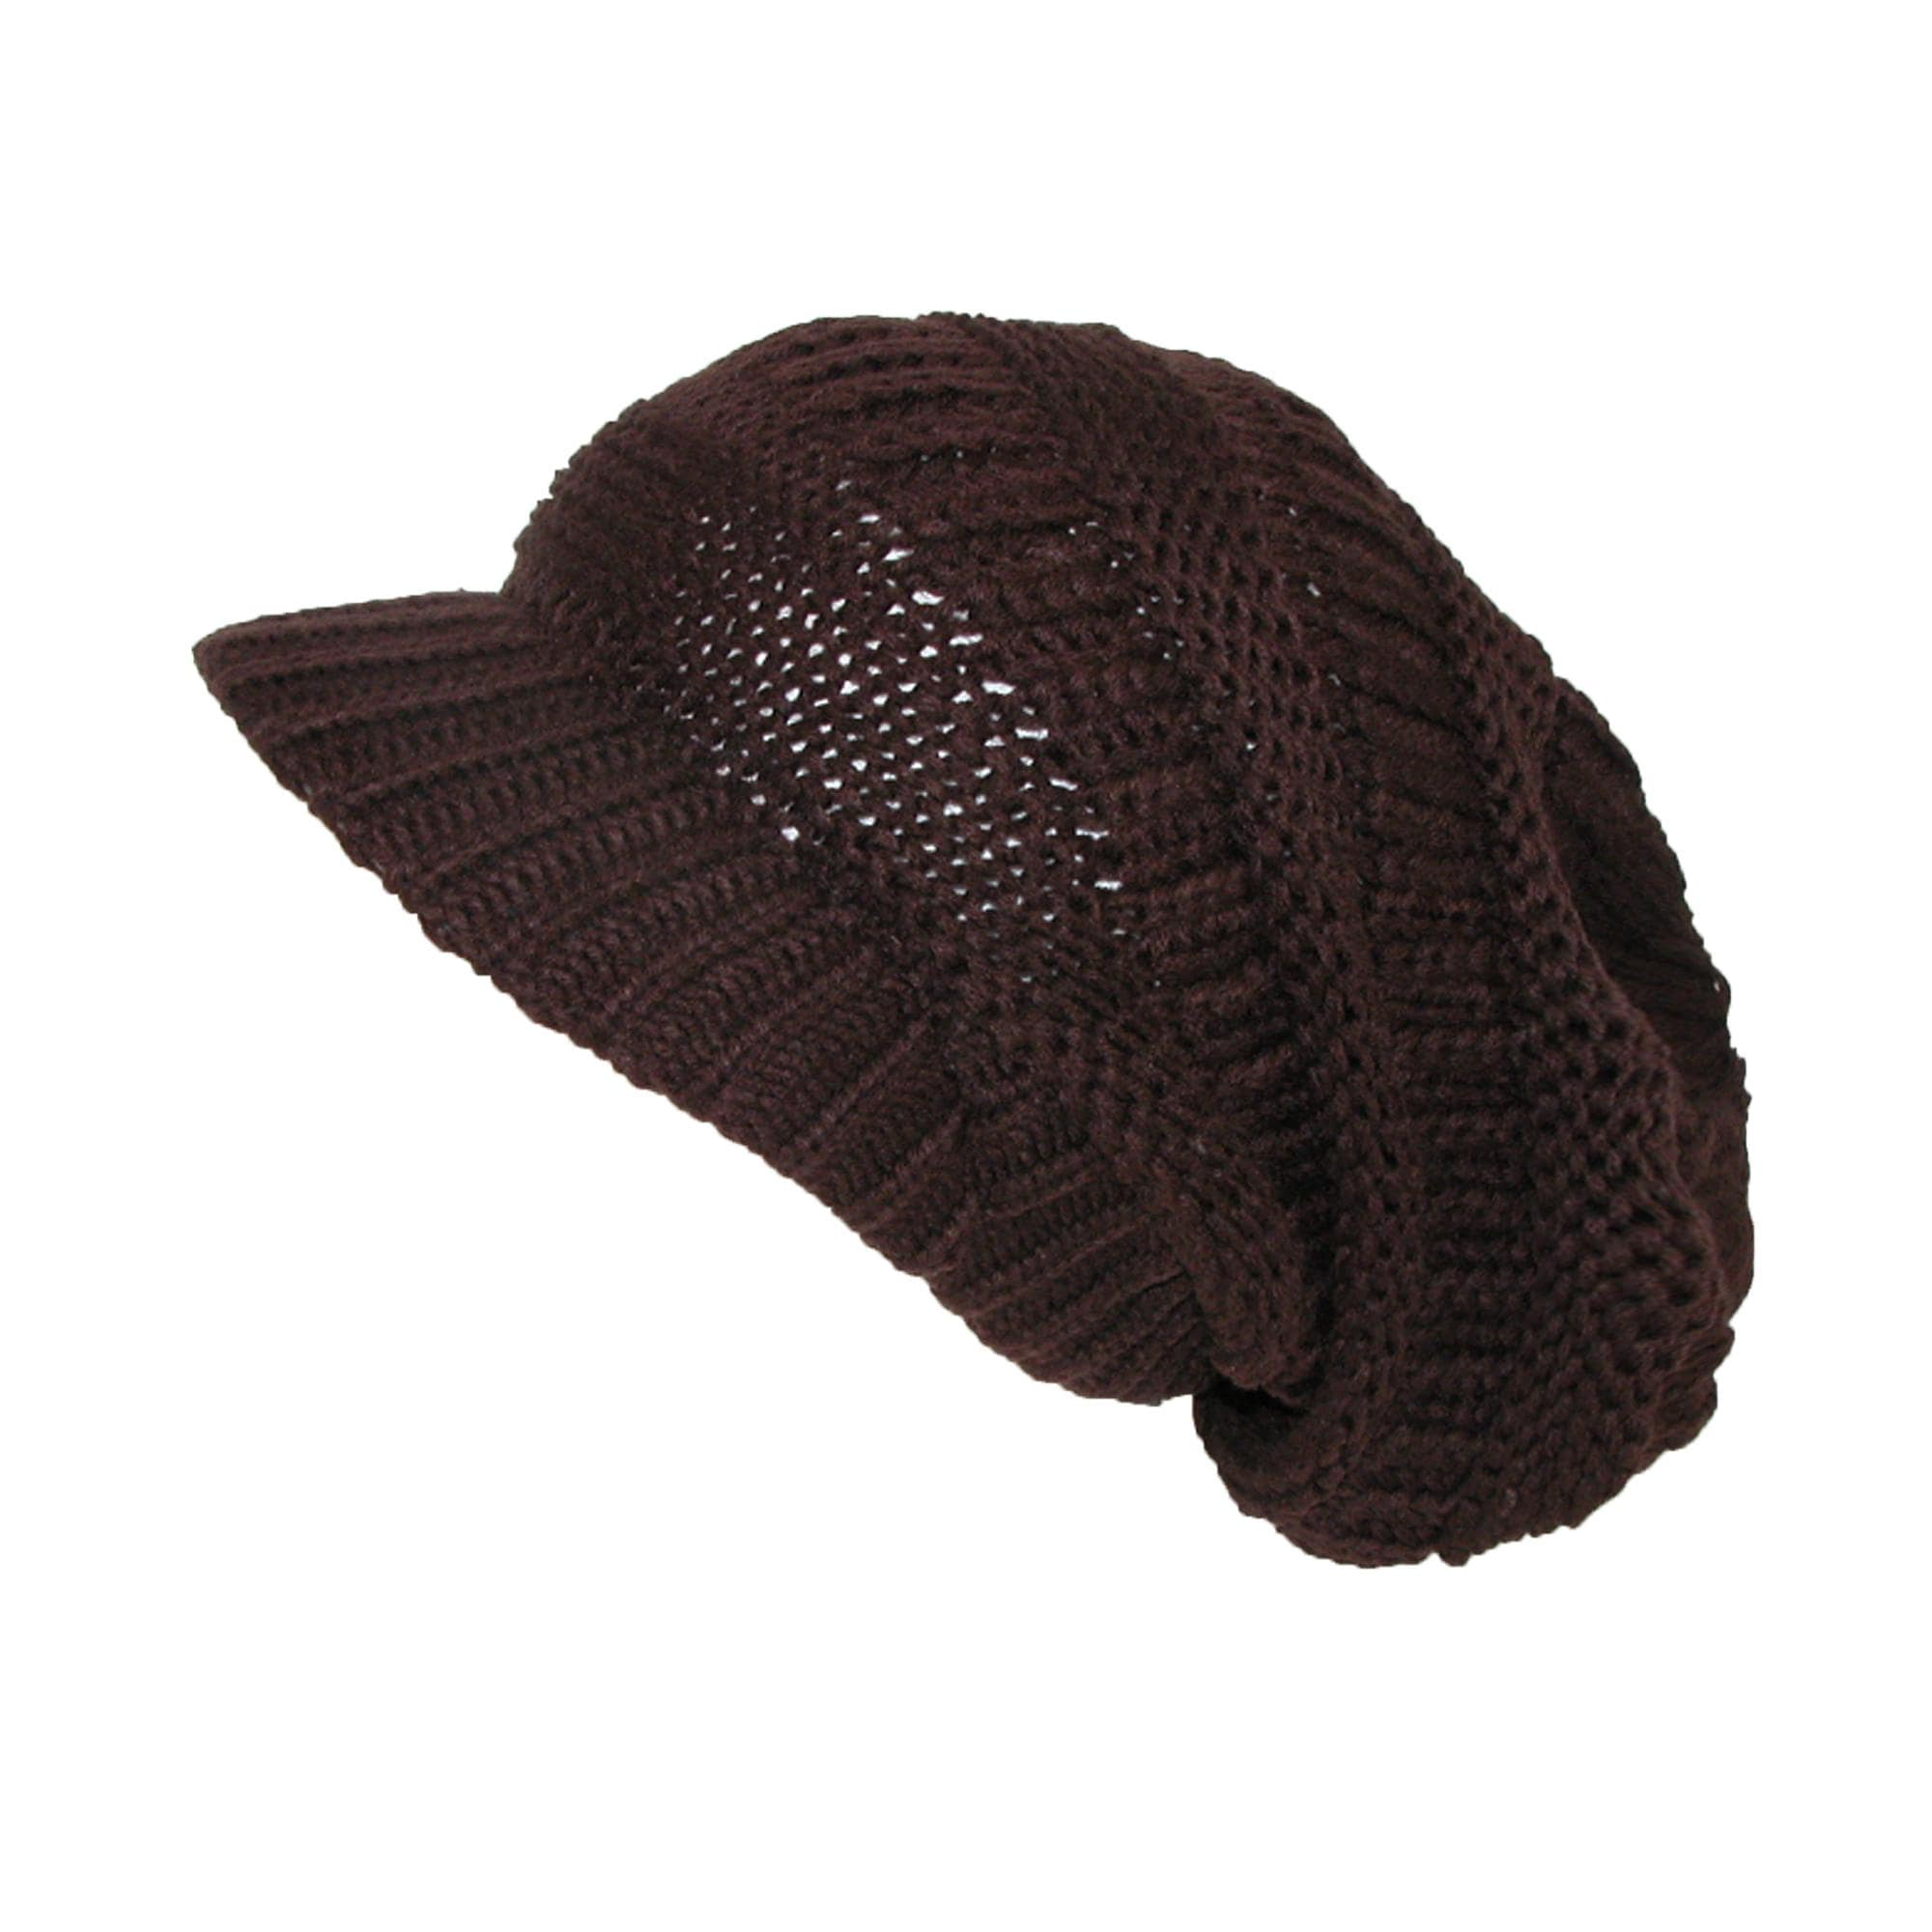 20c4d9b8bbf8a2 Shop CTM® Women's Throwback Chunky Knit Slouchy Beanie Hat - Free Shipping  On Orders Over $45 - Overstock - 14279296